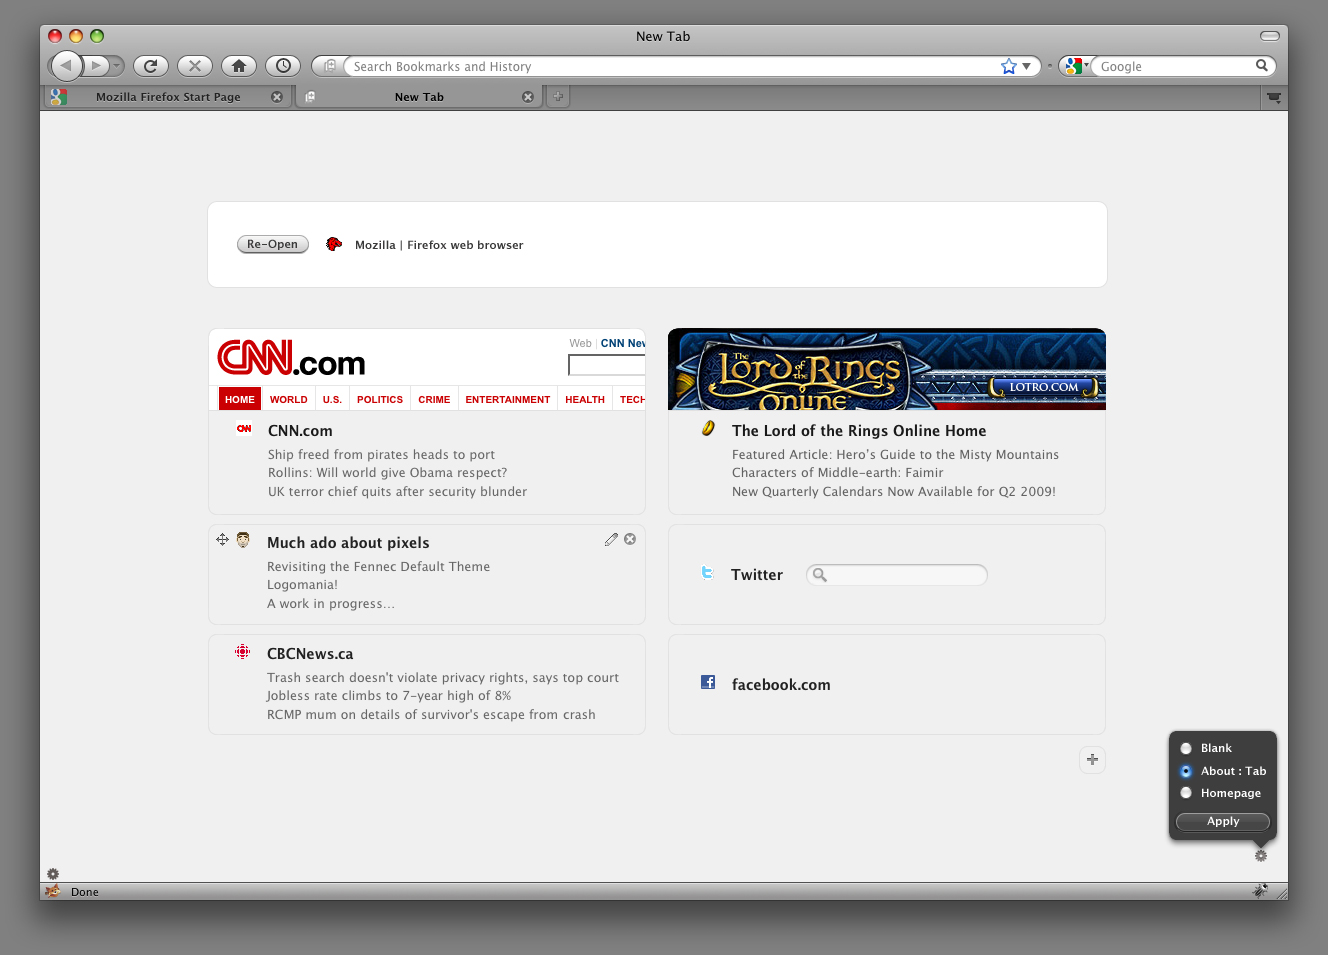 Firefox New Tab: Now With More Pixels! | Reticulating Splines